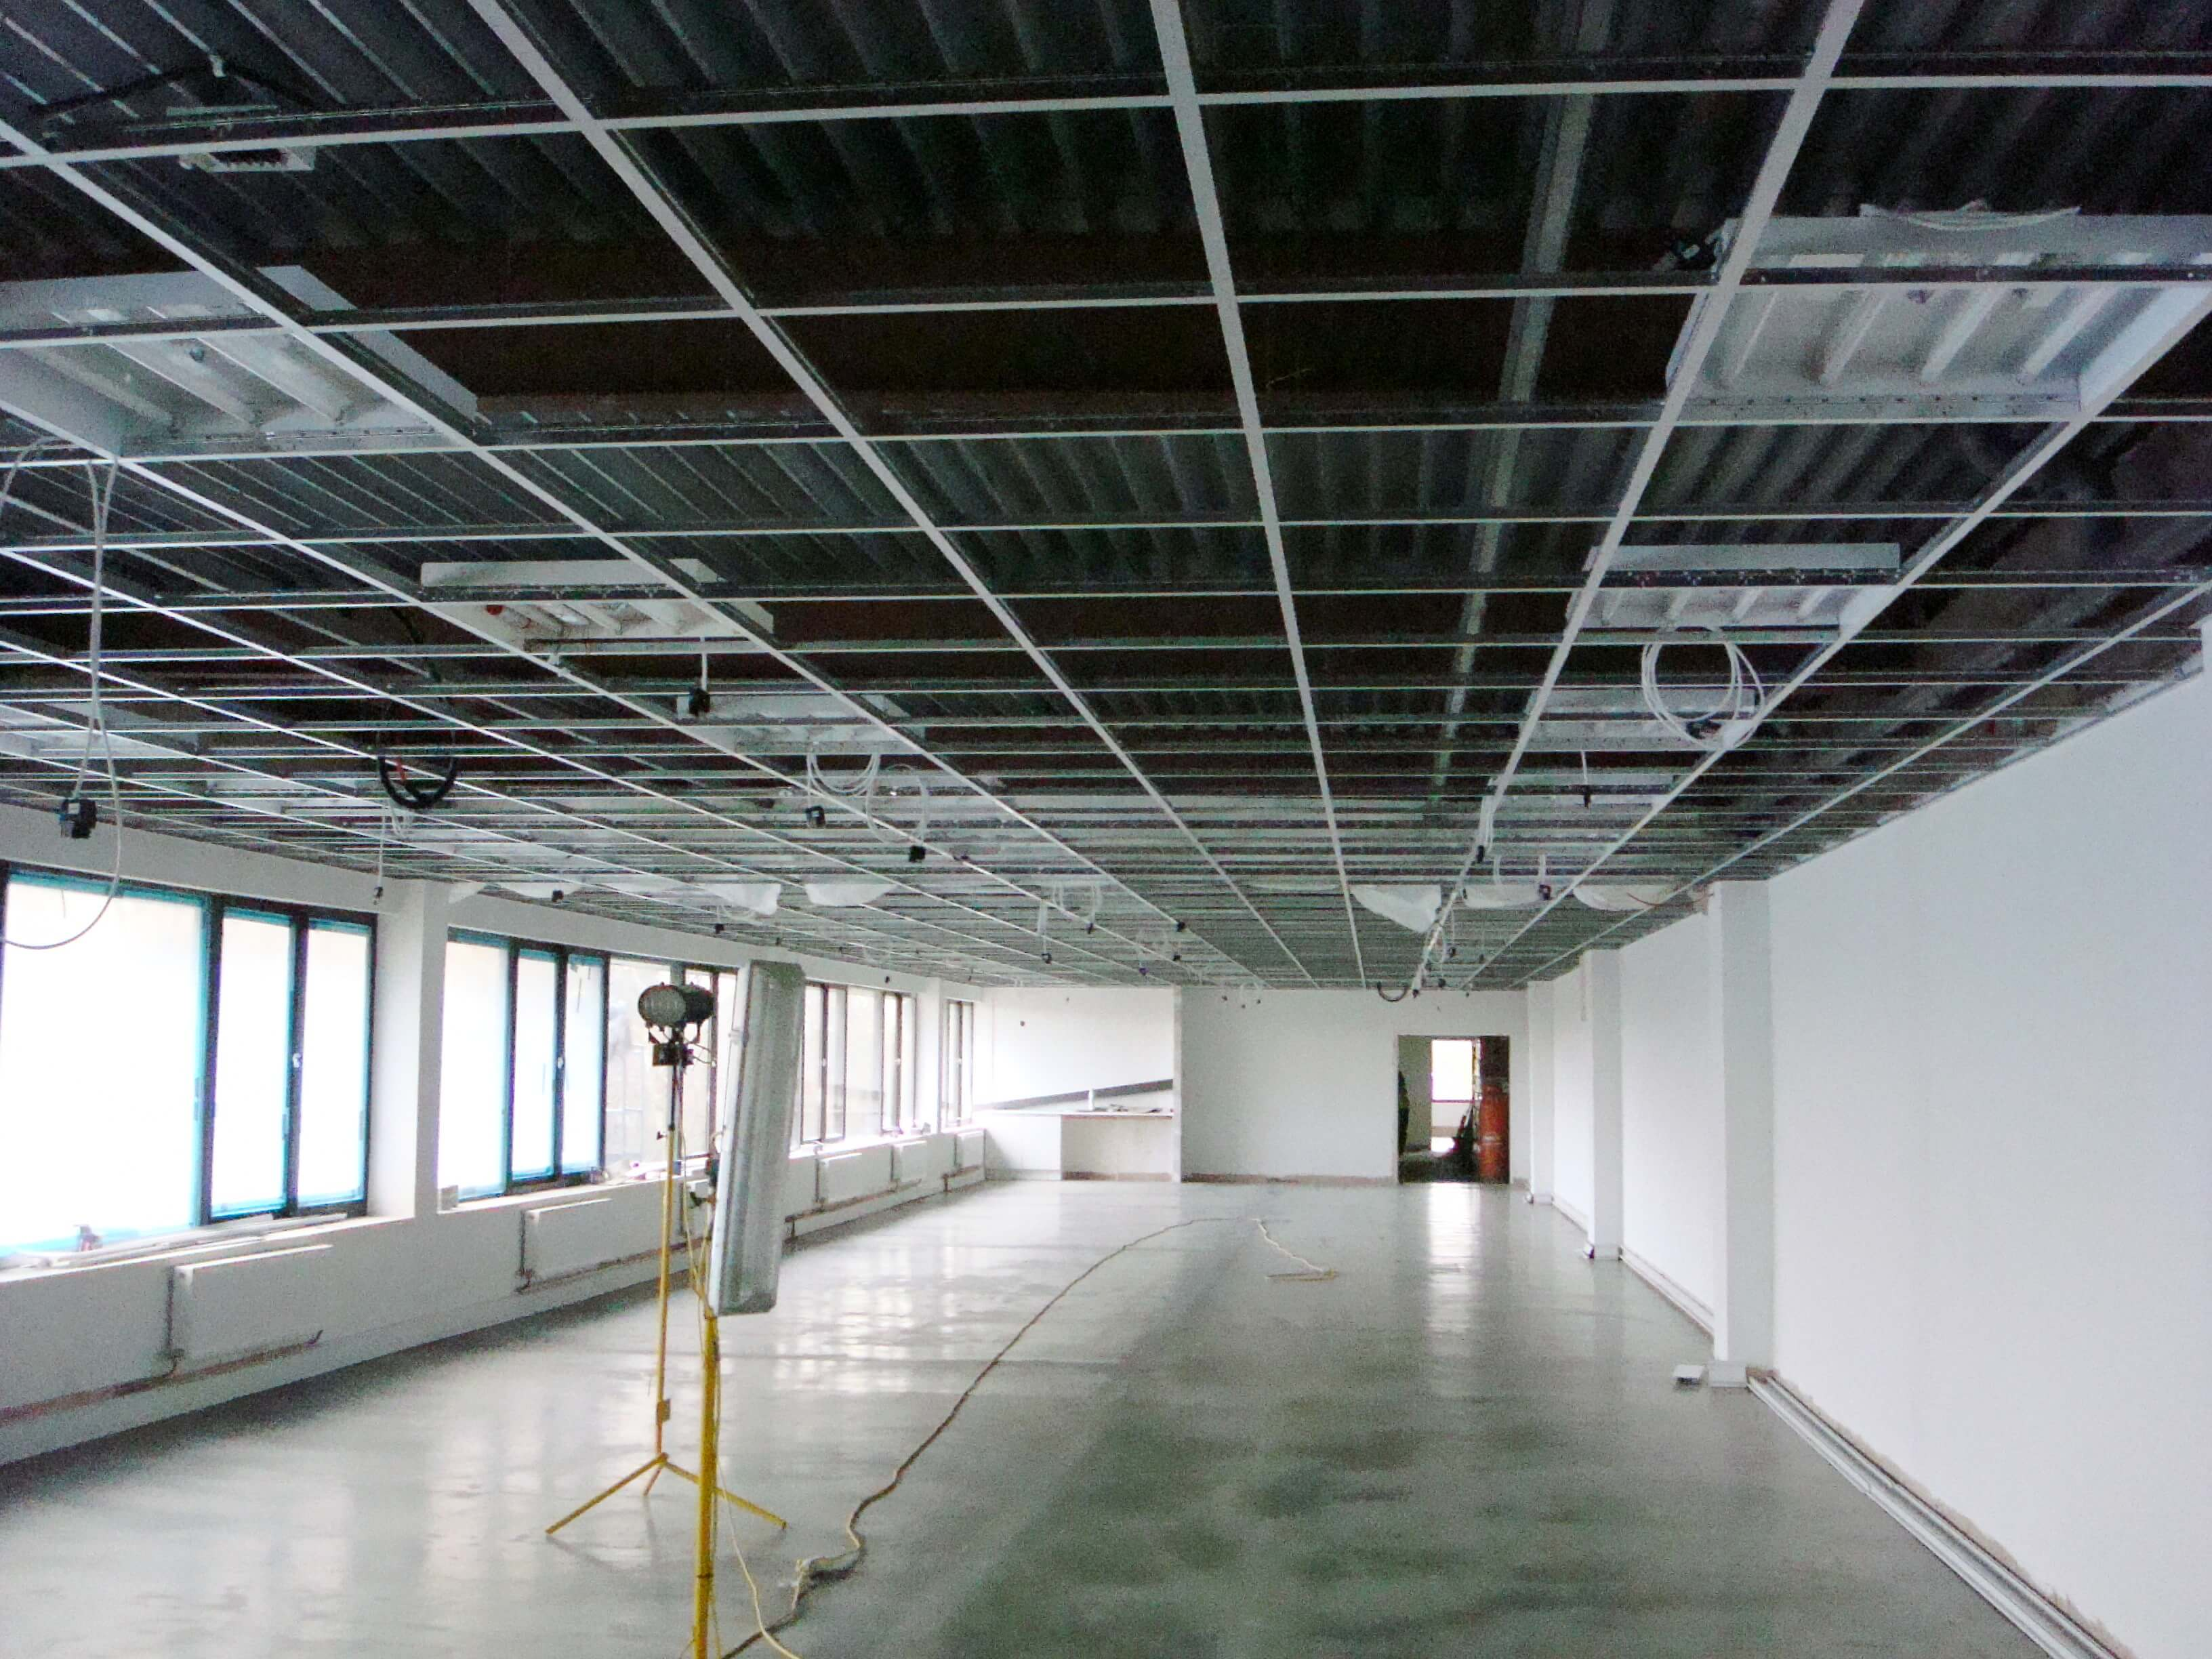 Suspended Ceiling Cre8tive Interiors